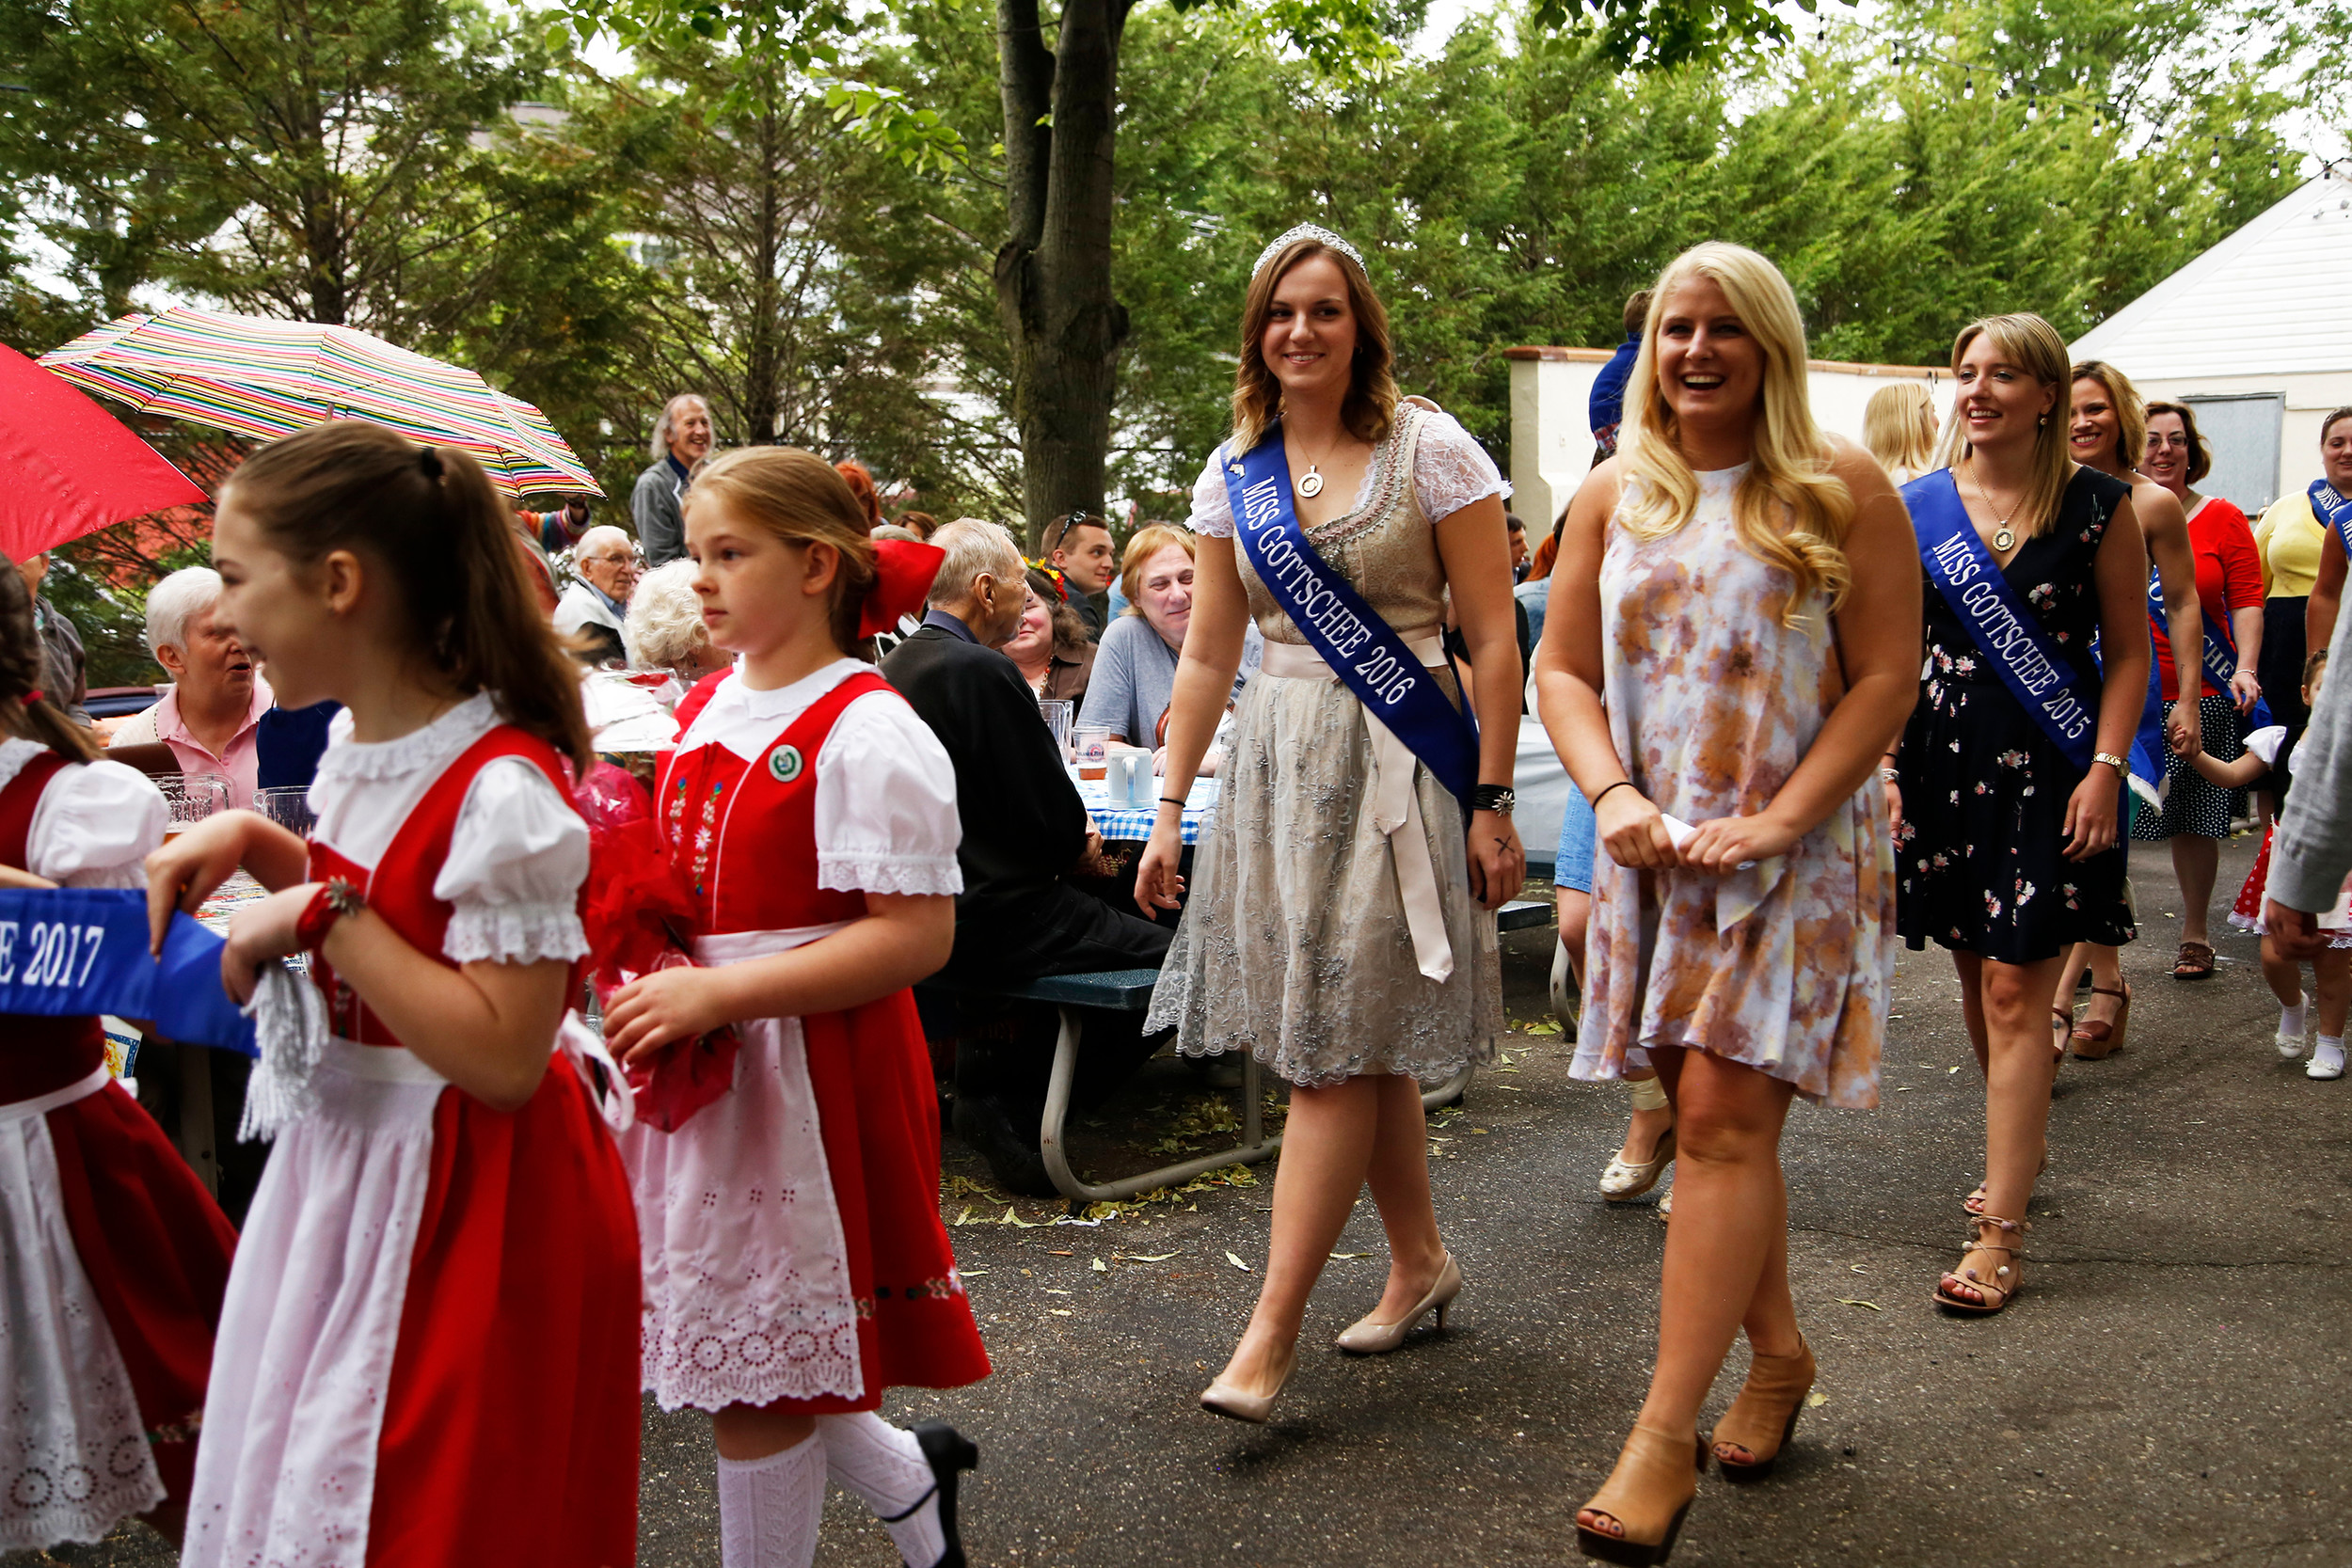 Parade participants marched with smiles during the festivities, including Miss Gottschee 2016 Rebecca Wagner, left, and the new Miss Gottschee 2017, Christina Popowych. They are trailed by past winners of the title.